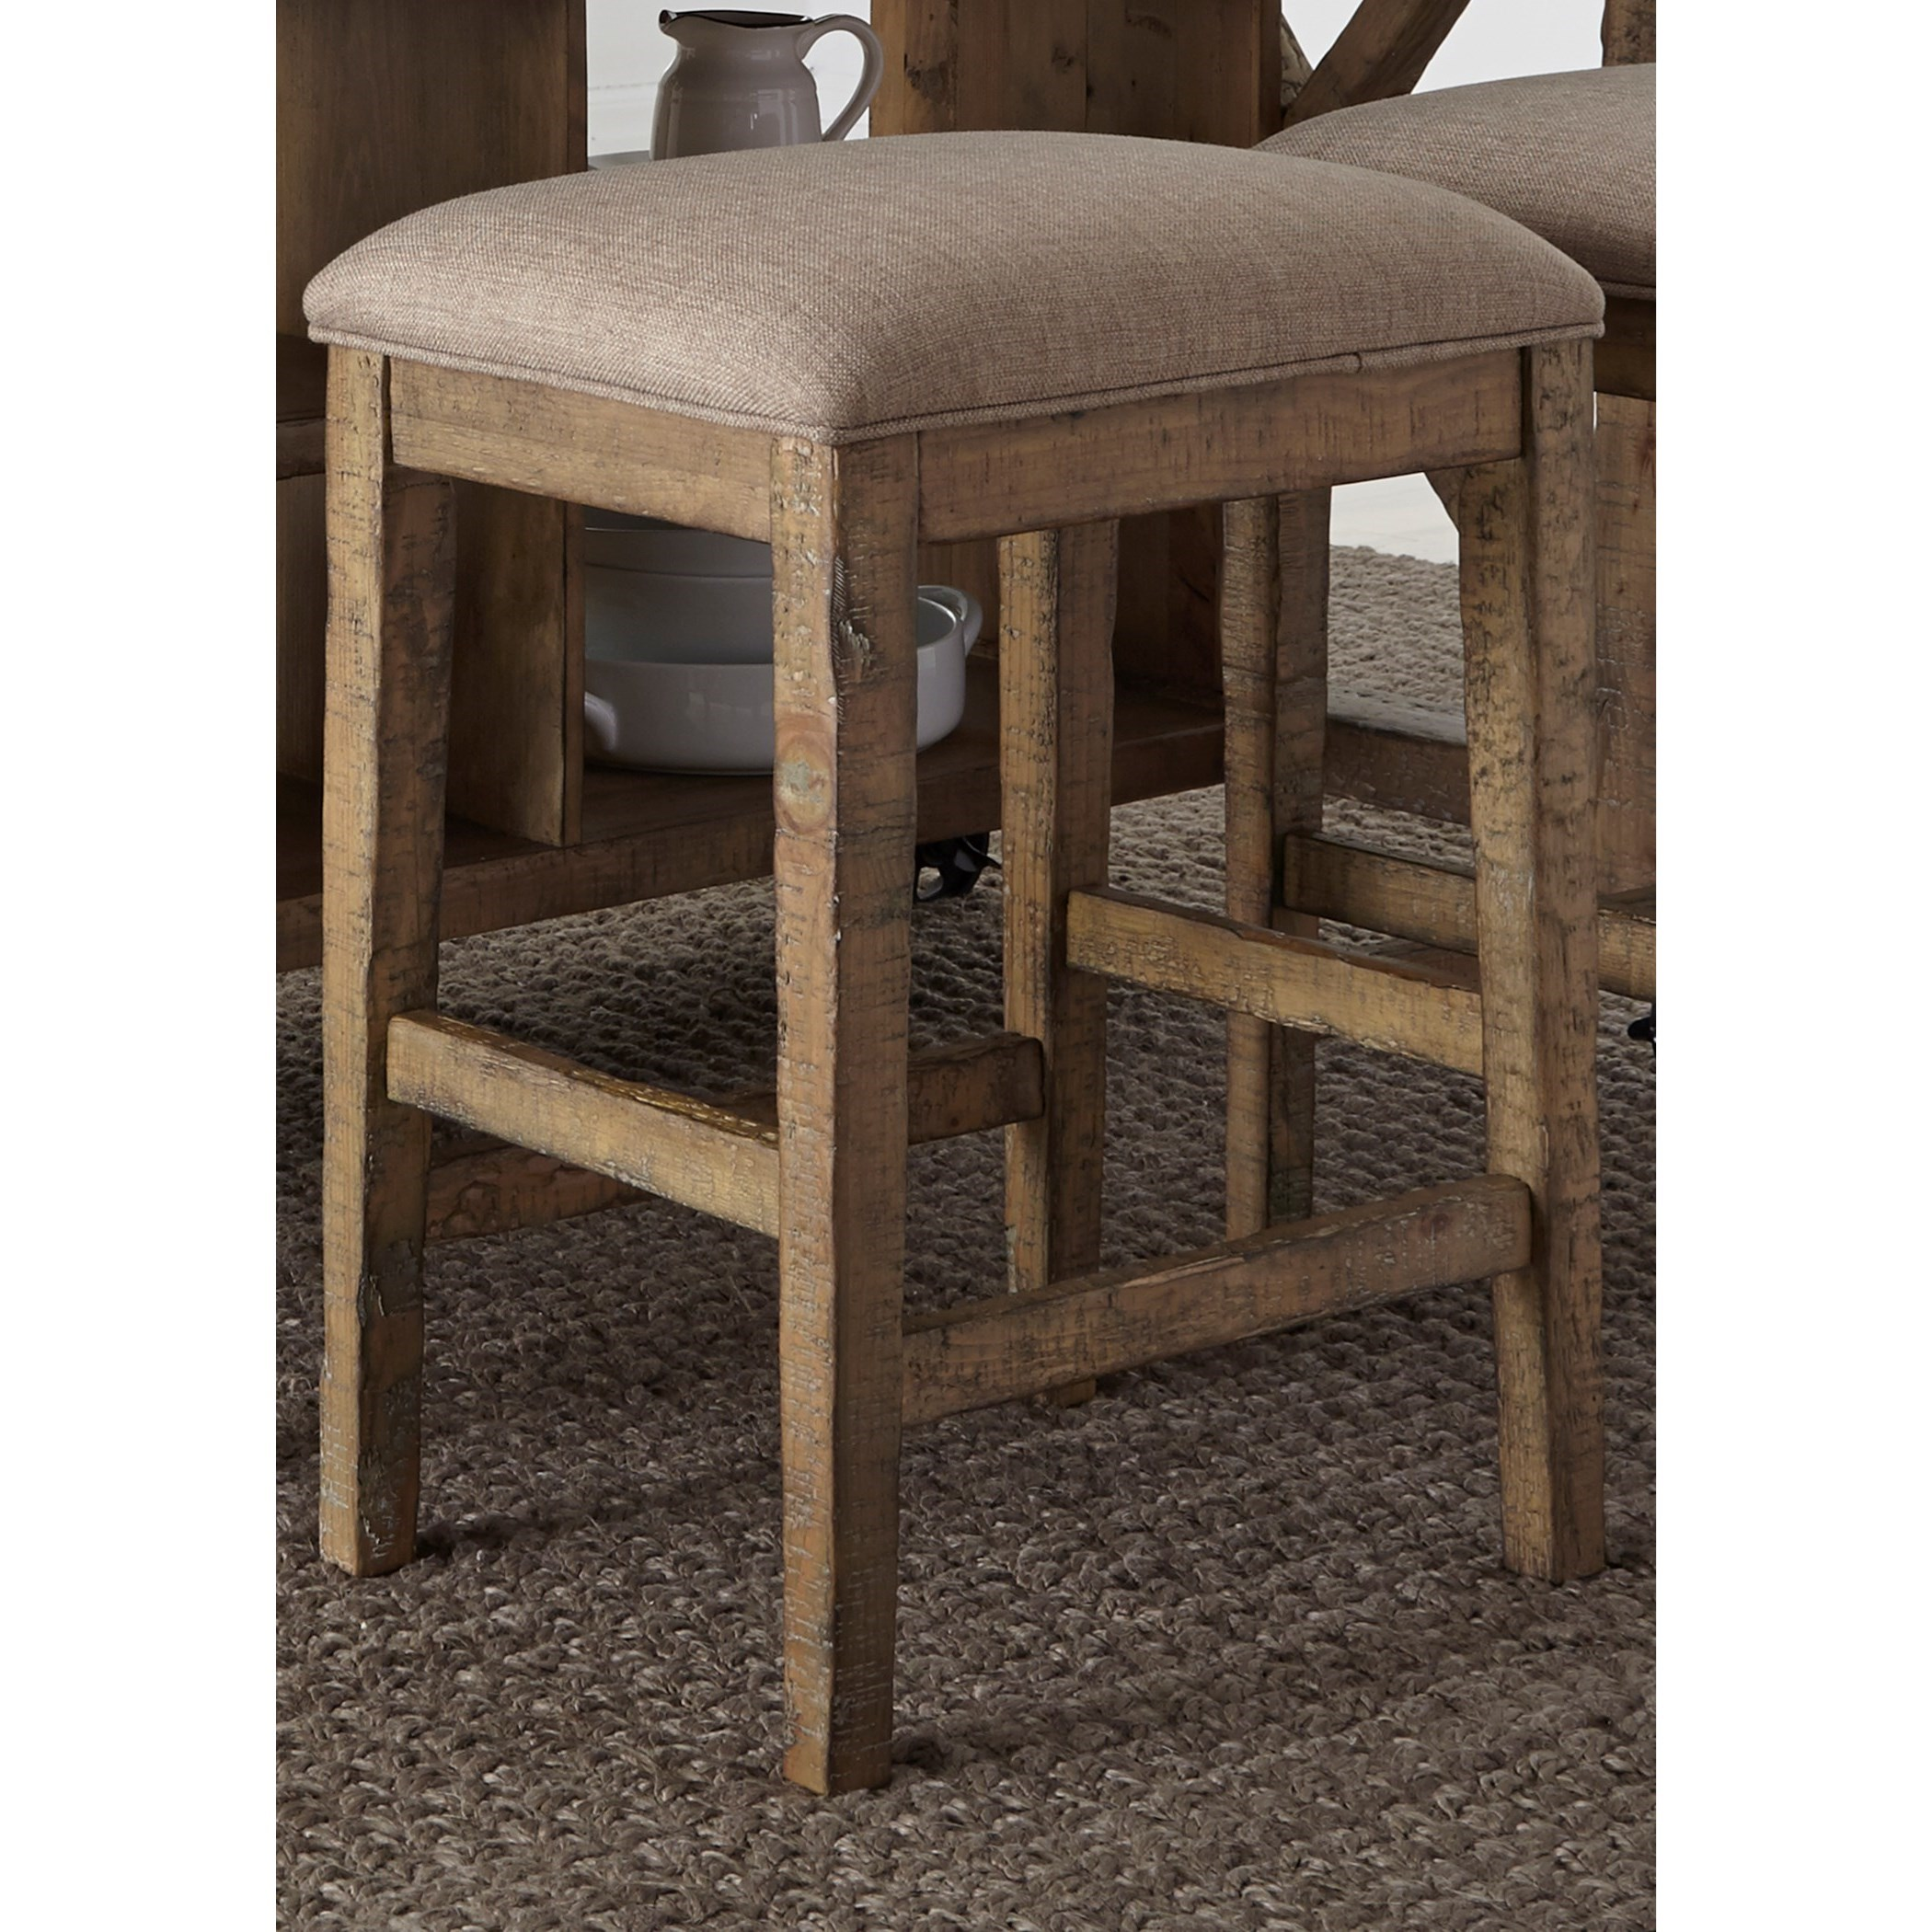 barstool store baxton french stools julie vintage upholstered p cottage weathered fabric bar beige stool oak studio tsf